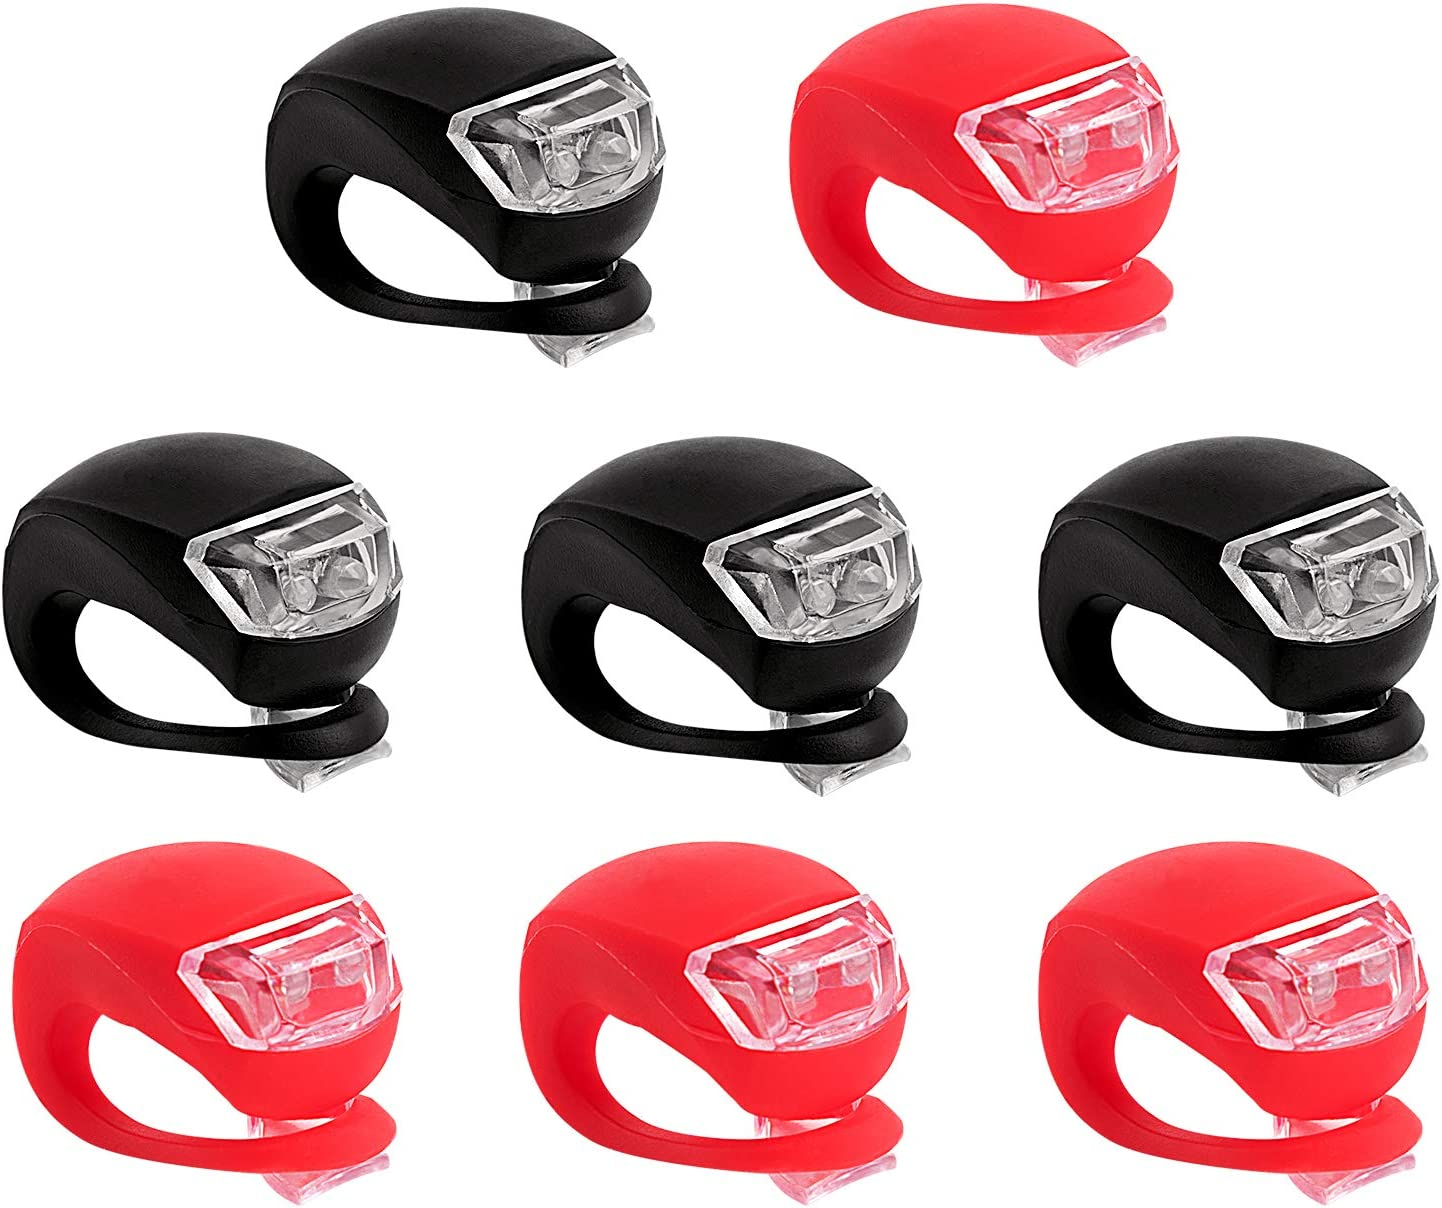 4pcs Bicycle Light Front and Rear Silicone LED Bike Light Headlight /& Taillight